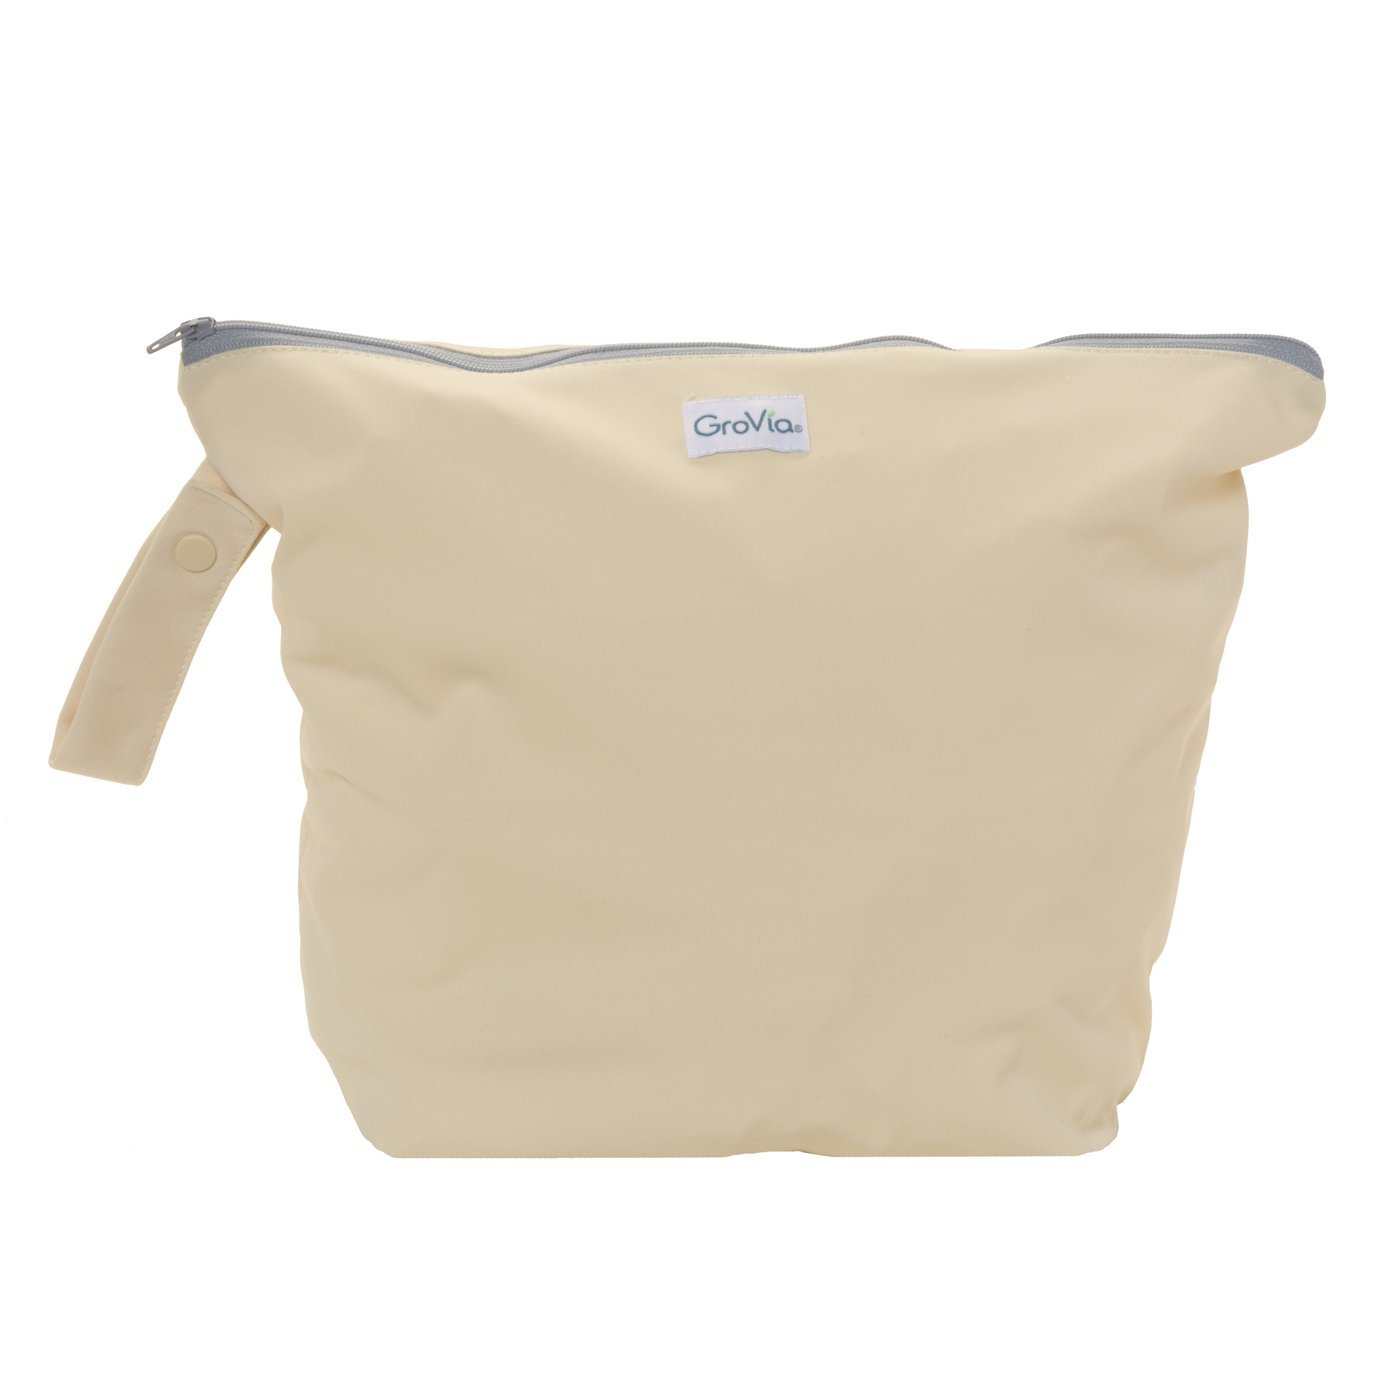 GroVia Reusable Zippered Wetbag for Baby Cloth Diapering and More (Vanilla) by GroVia